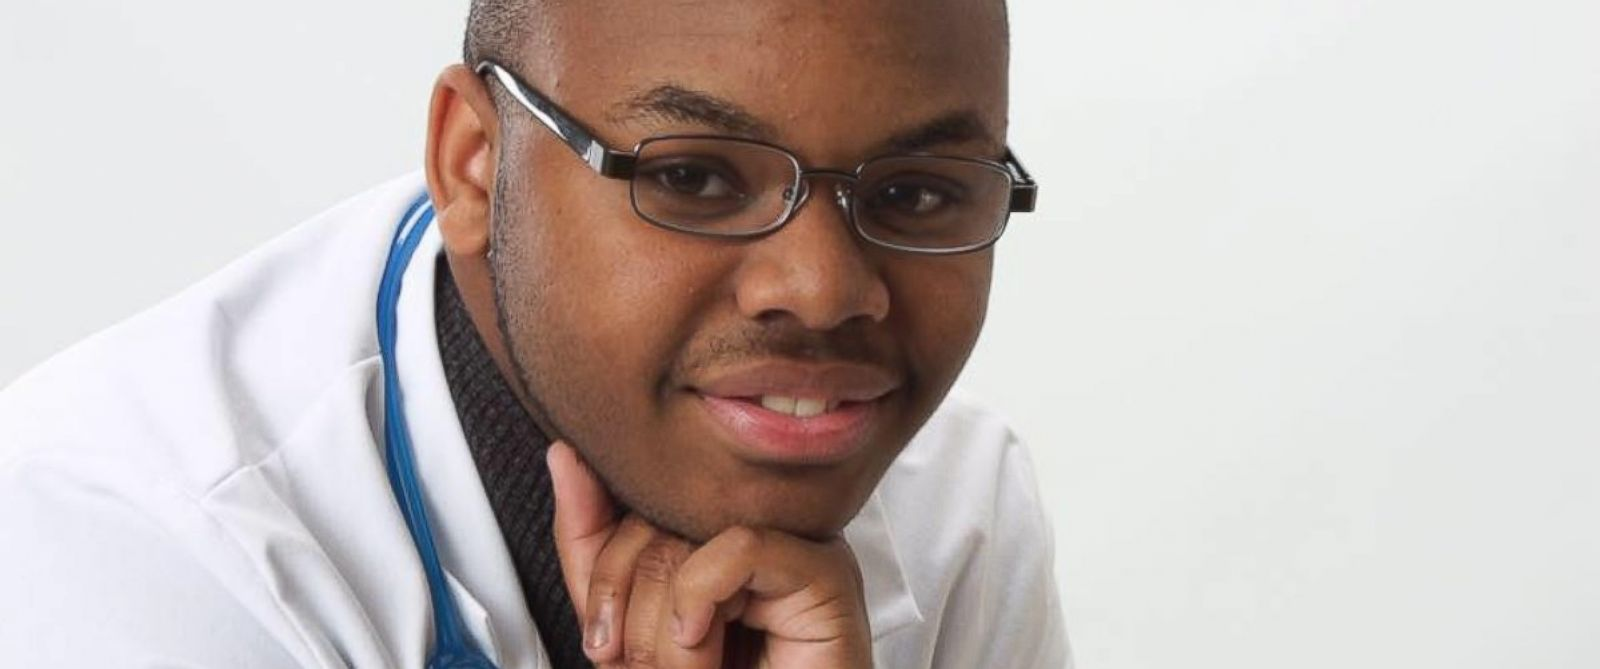 PHOTO:Malachi Love-Robinson, 18, is accused by police of pretending to be a physician and fooling innocent patients for months.